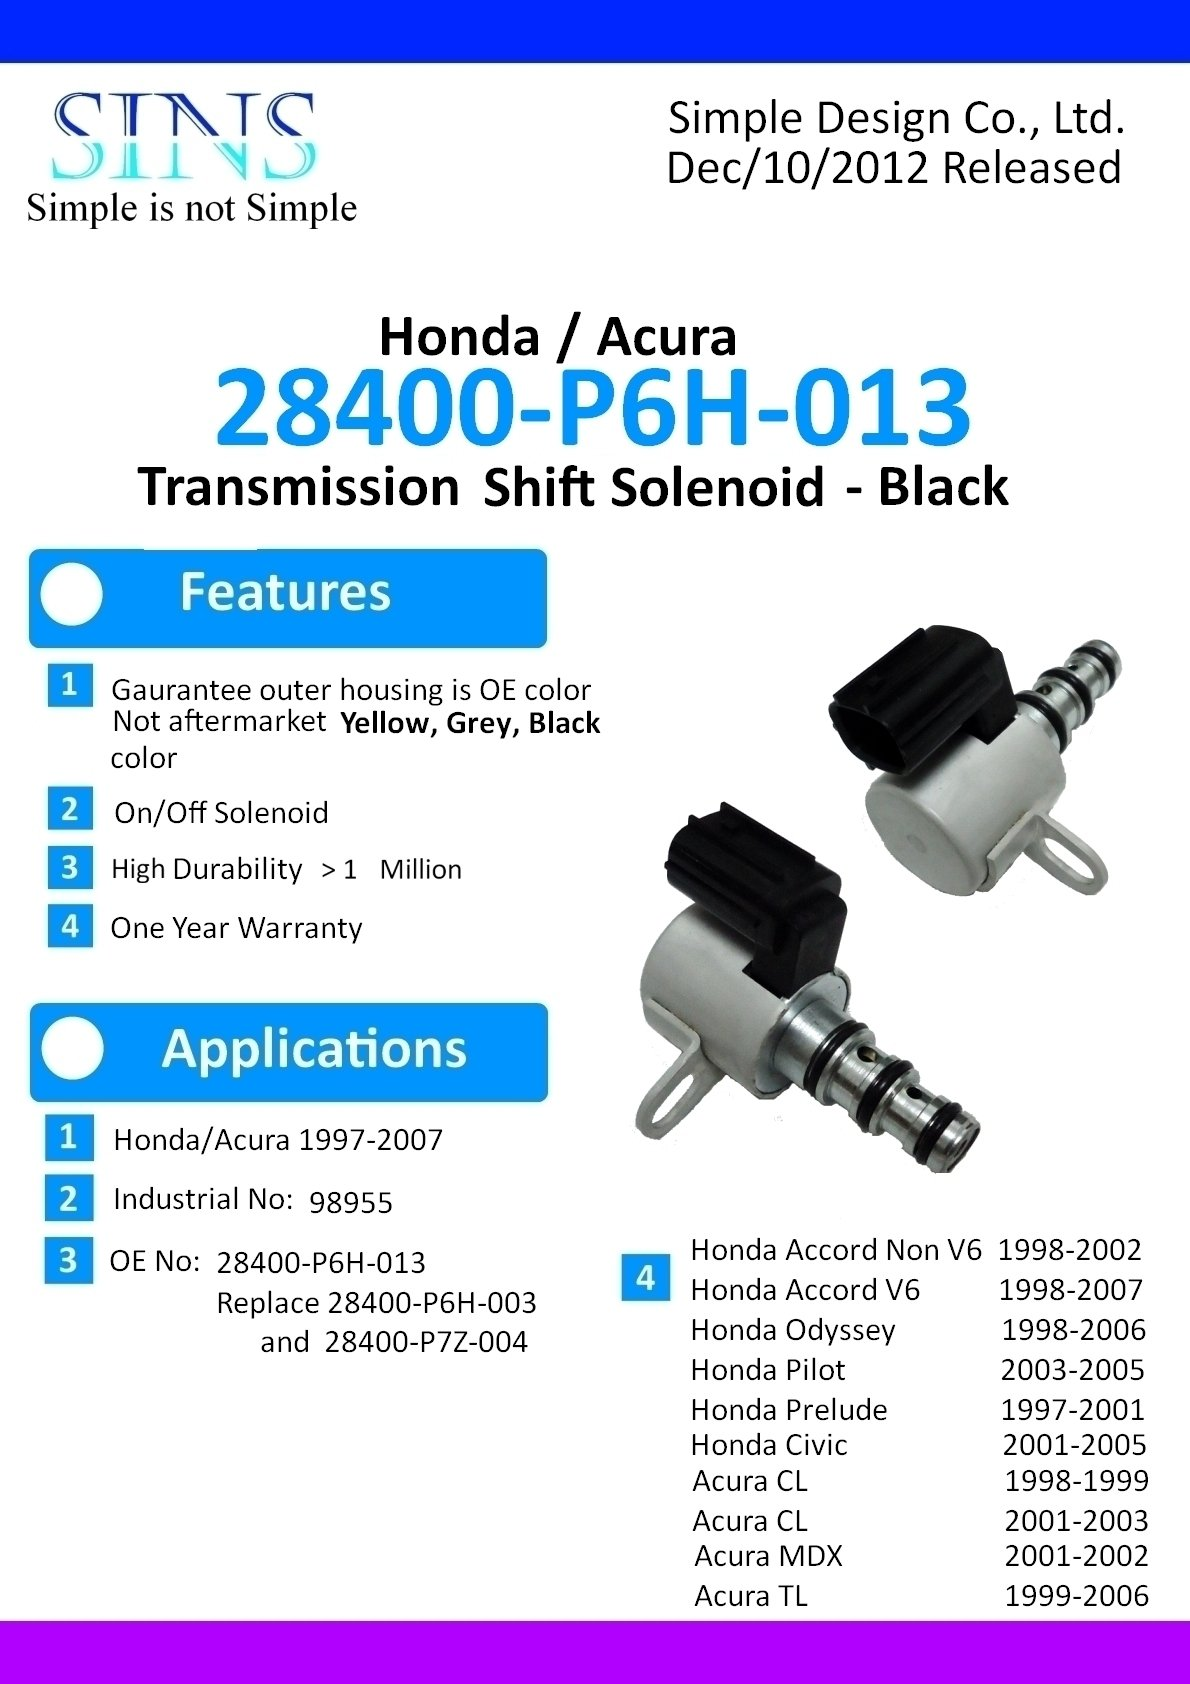 SINS - Accord Odyssey Pilot Prelude Civic CL MDX TL Transmissions Shift Solenoid Black 28400-P6H-013 28400-P7Z-004